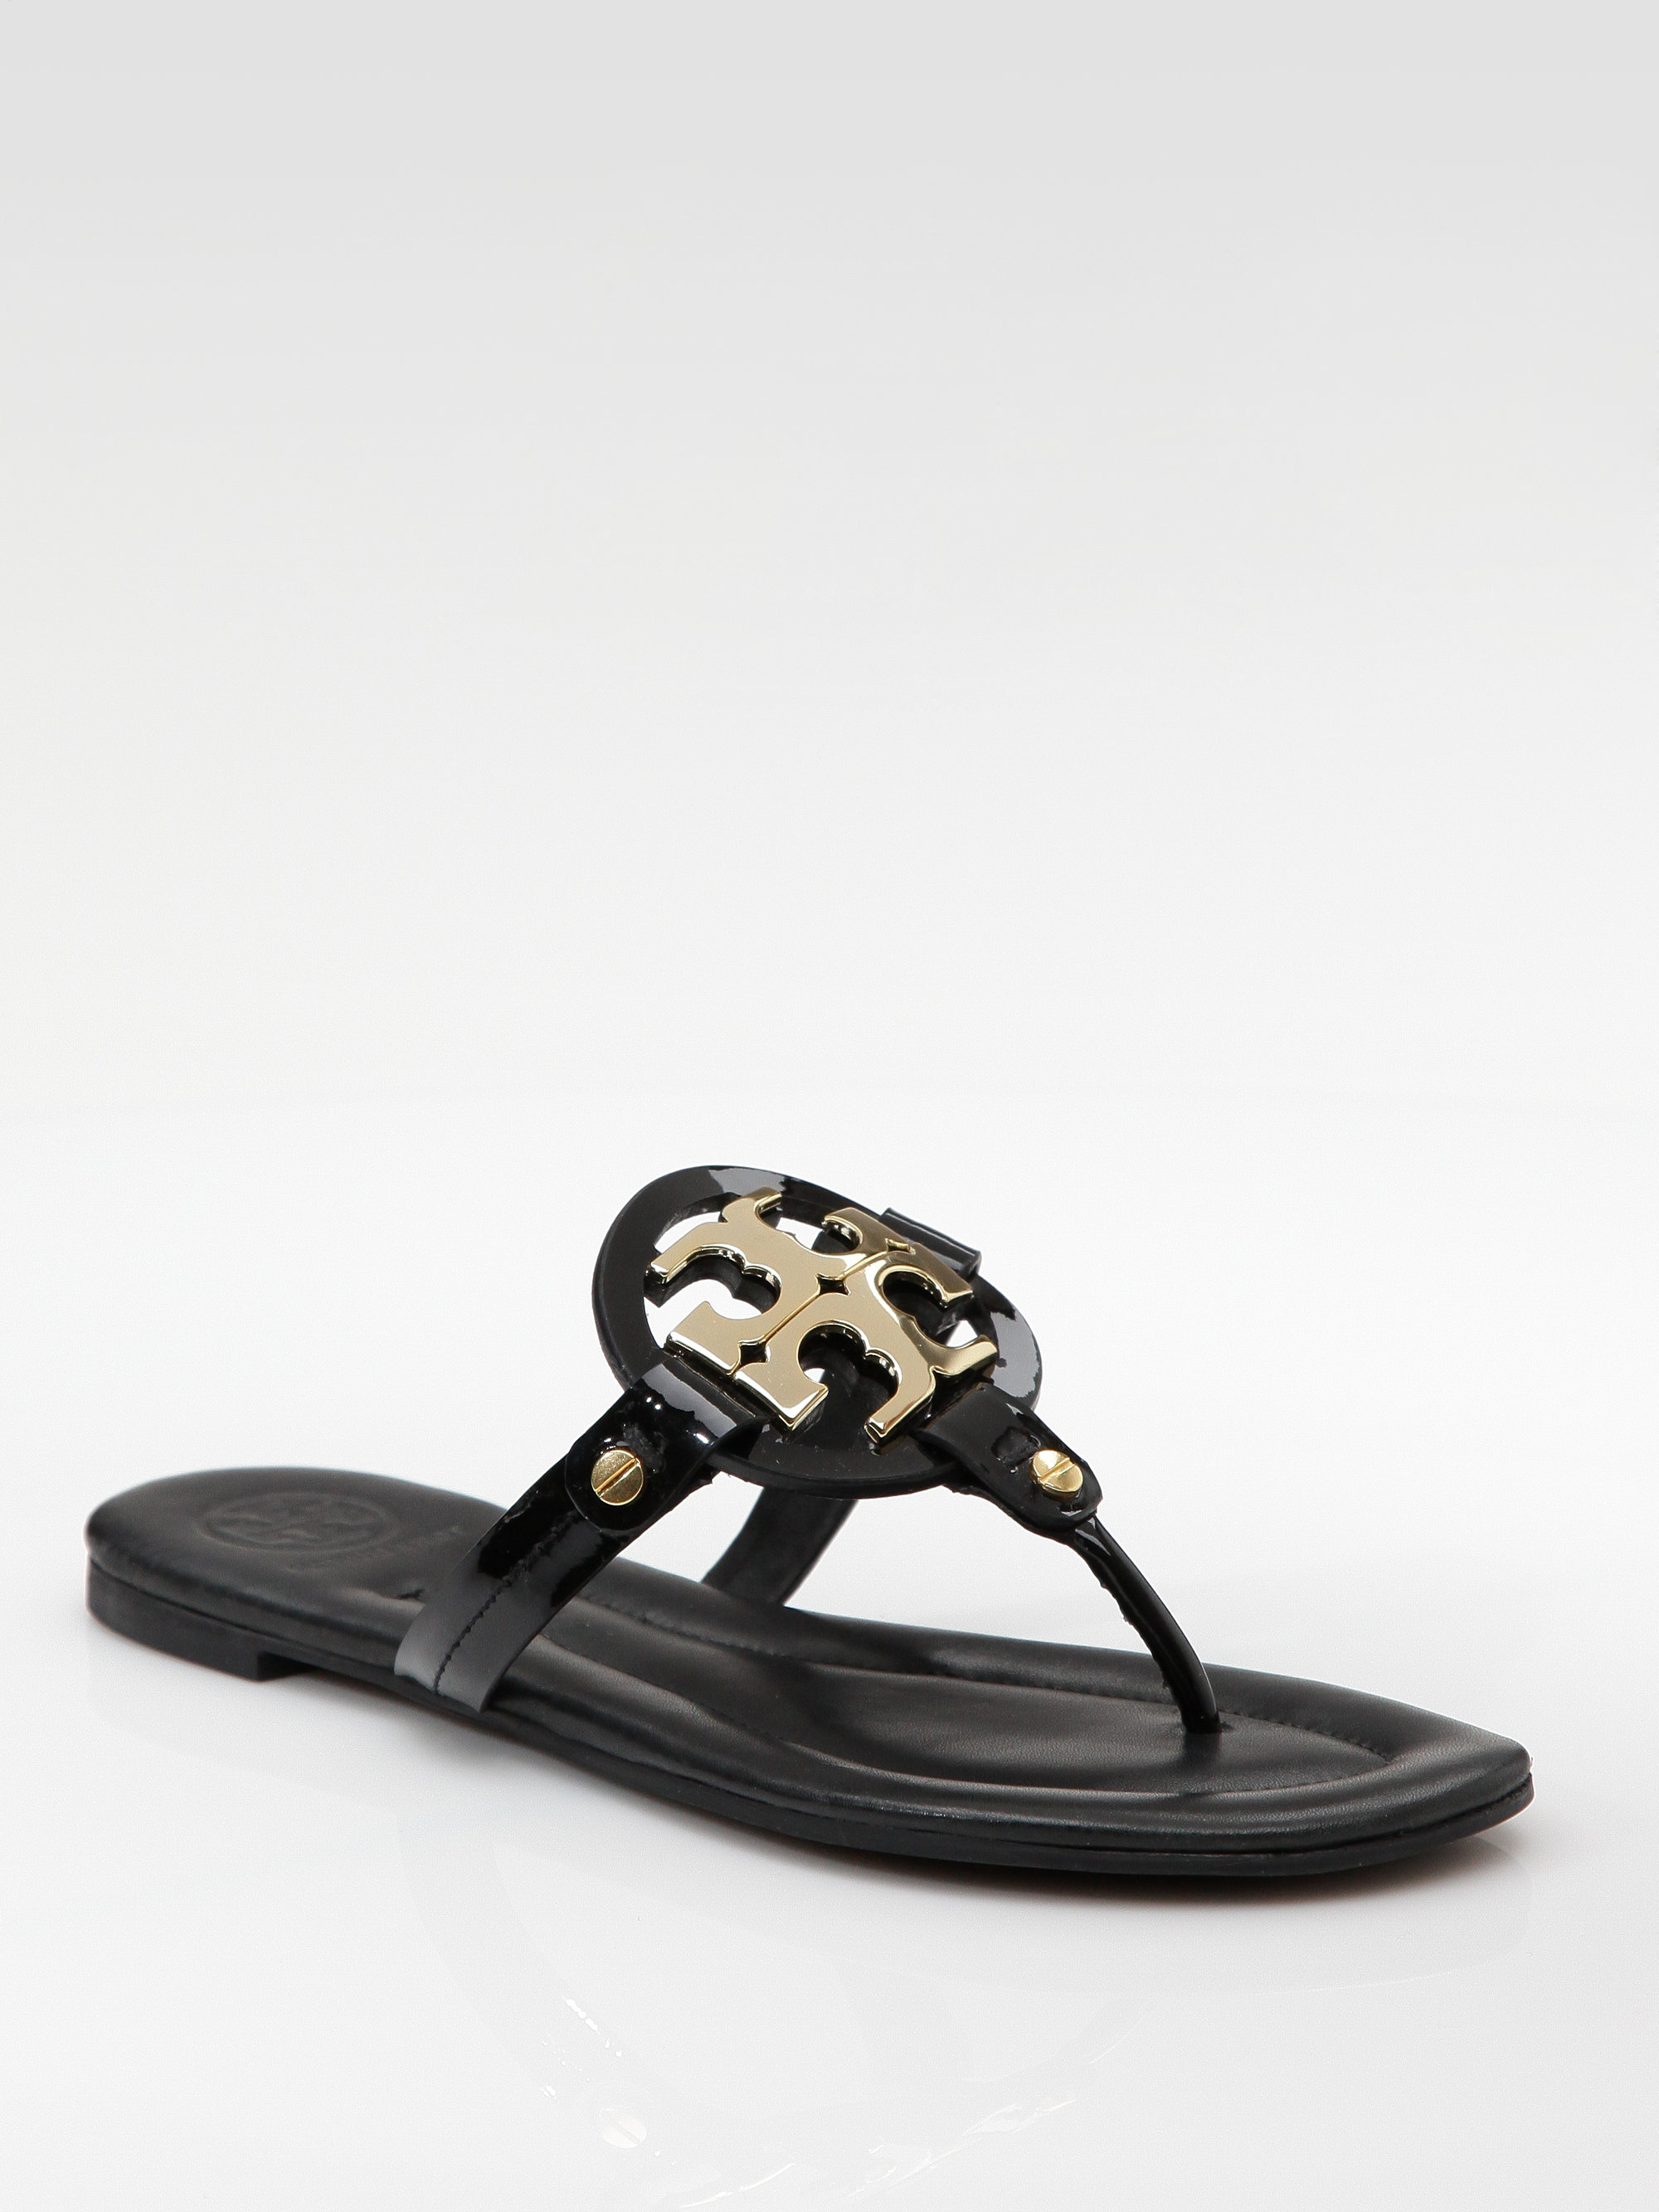 Lyst Tory Burch Patent Leather Flat Sandals In Black